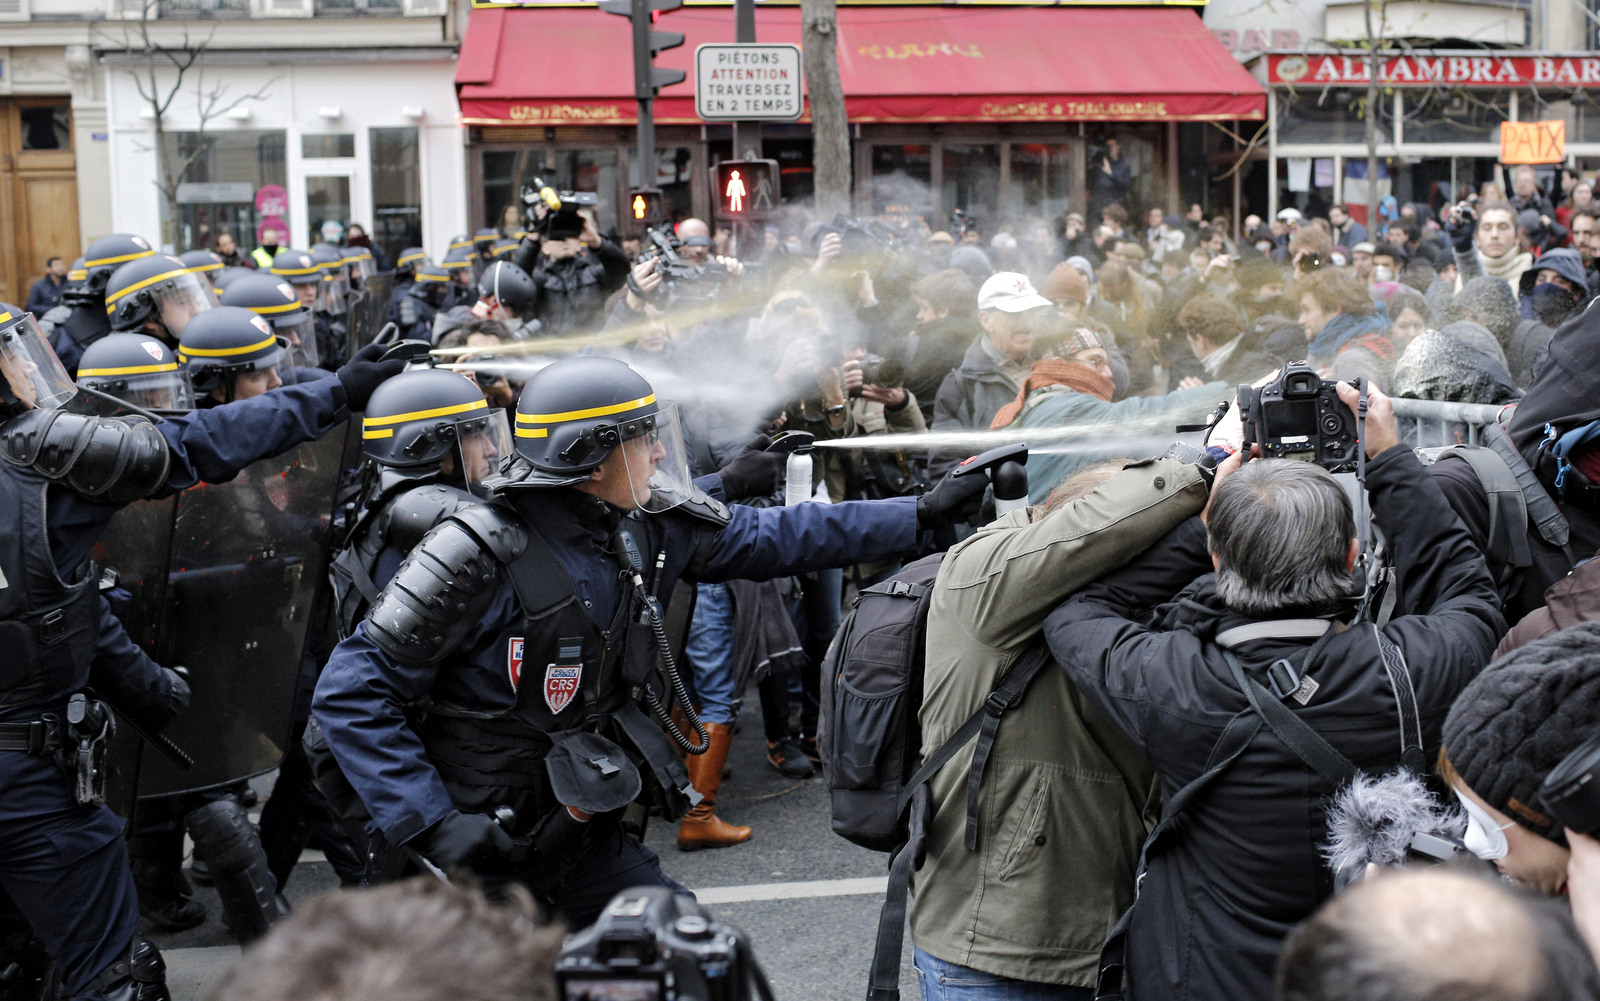 Heavy Clashes As French Riot Police Use Sweeping Powers To Crack Down On Climate Protesters